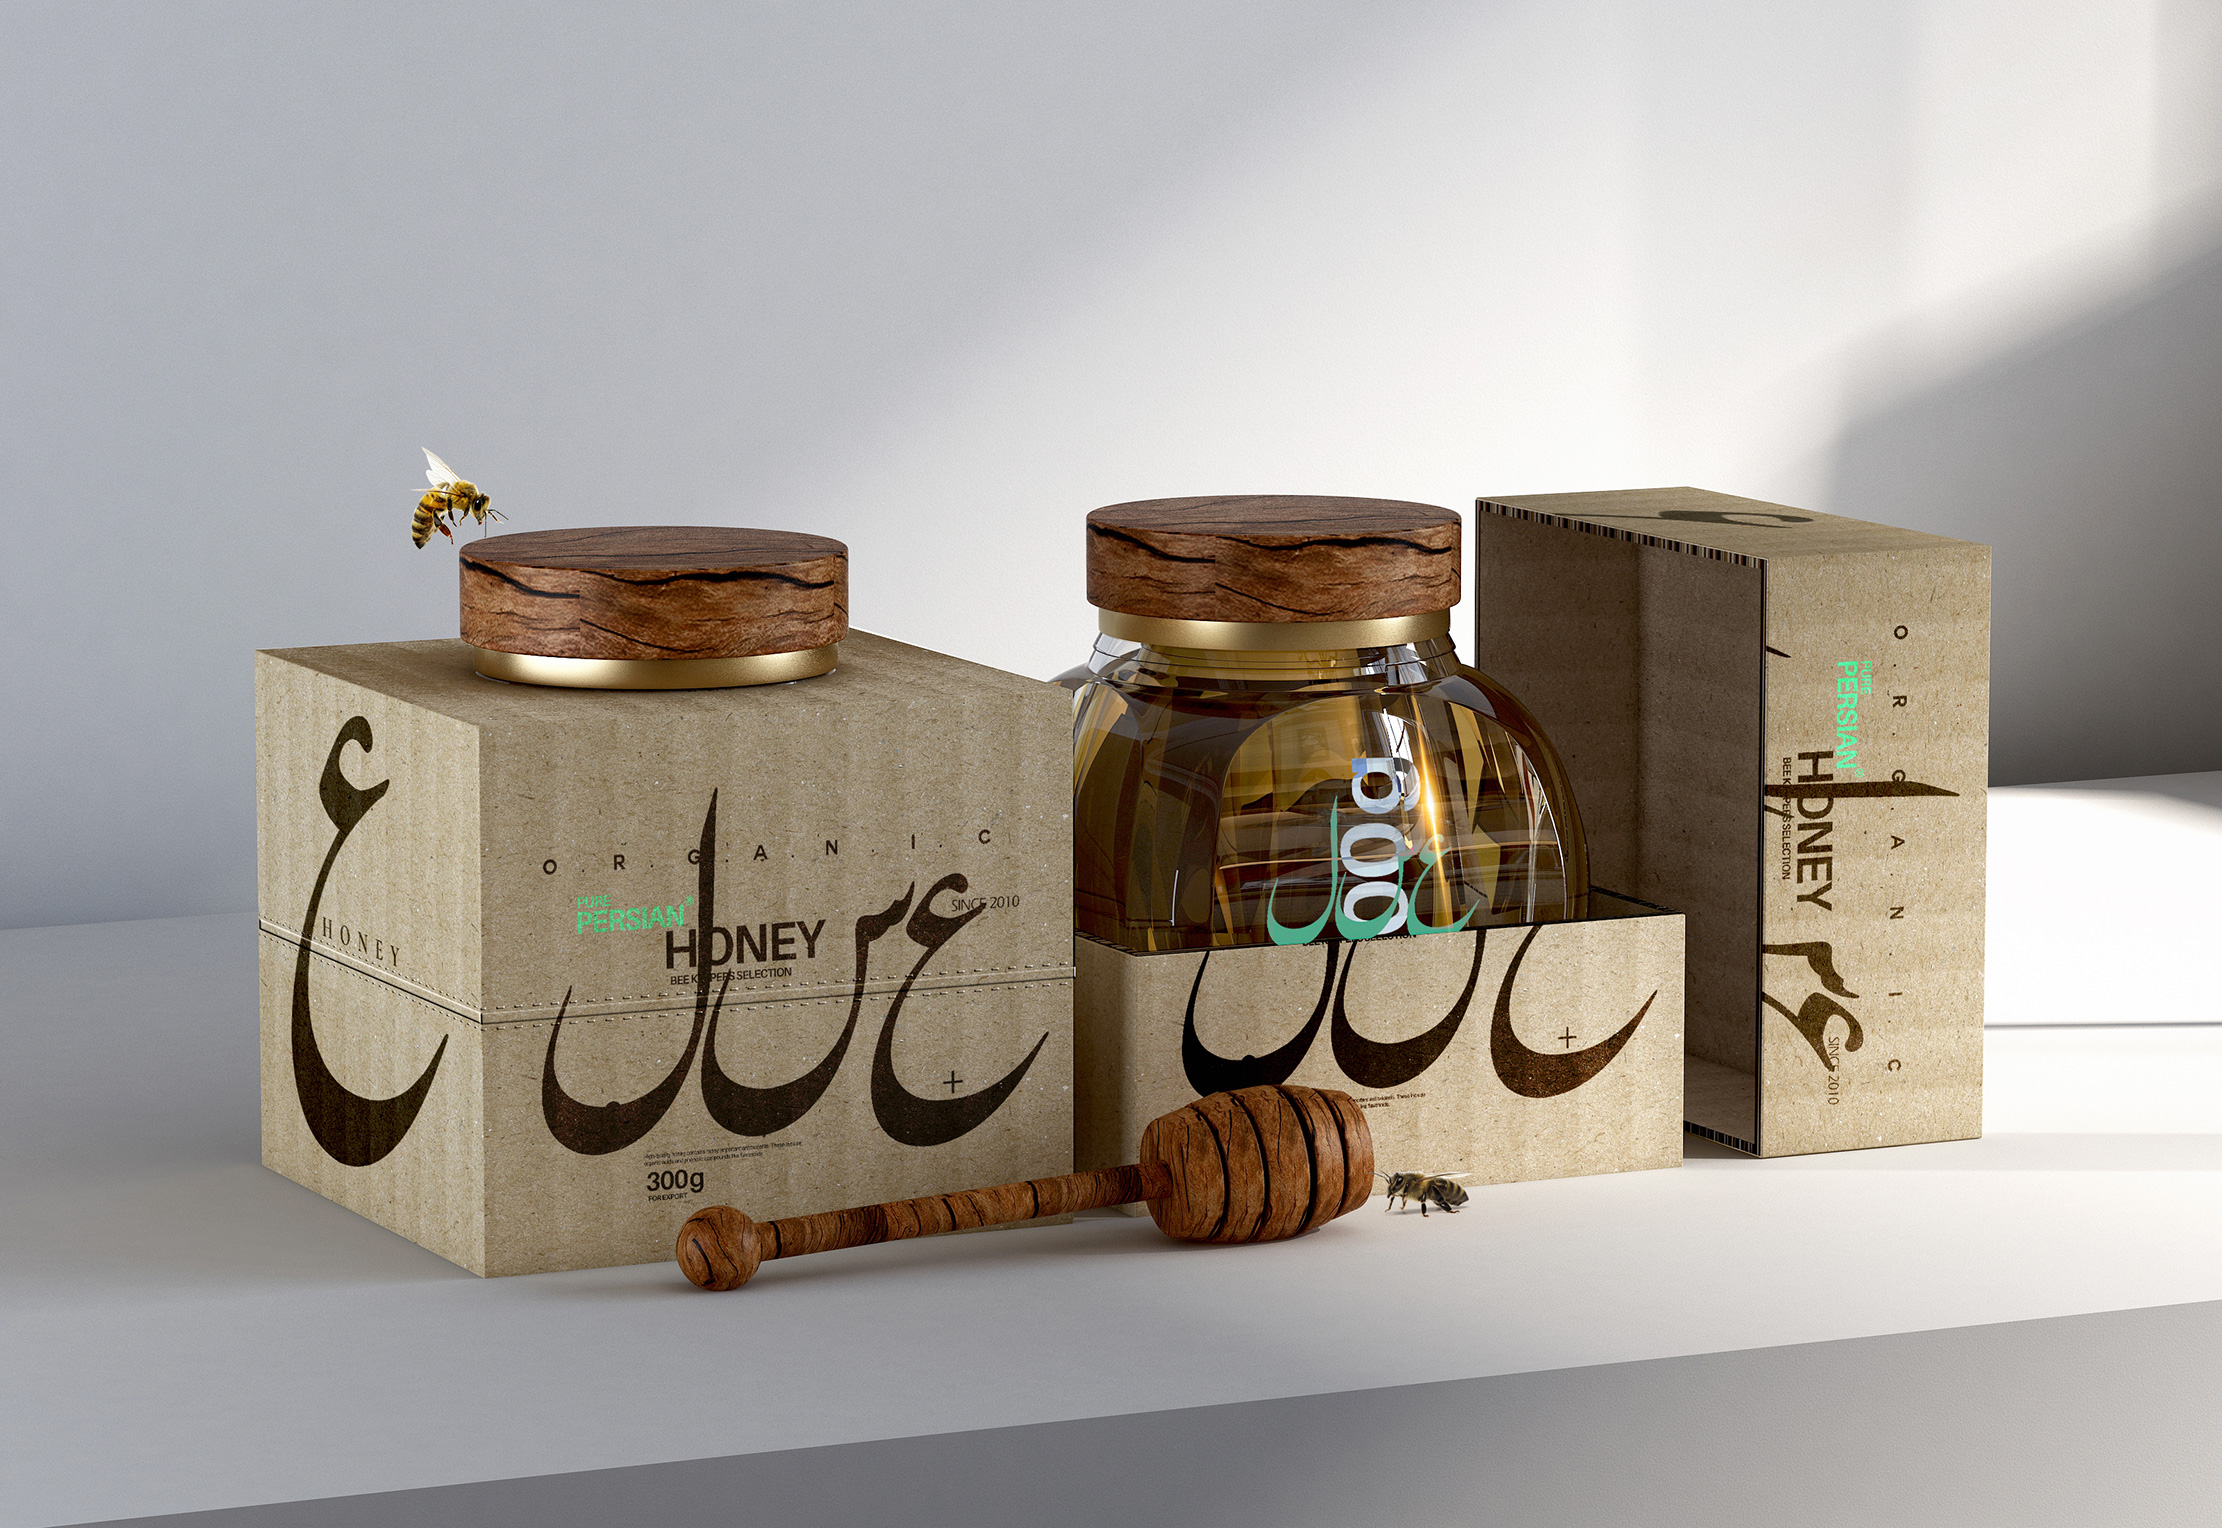 Taha Fakouri Creates Concept for New Pure Persian Honey Packaging Design